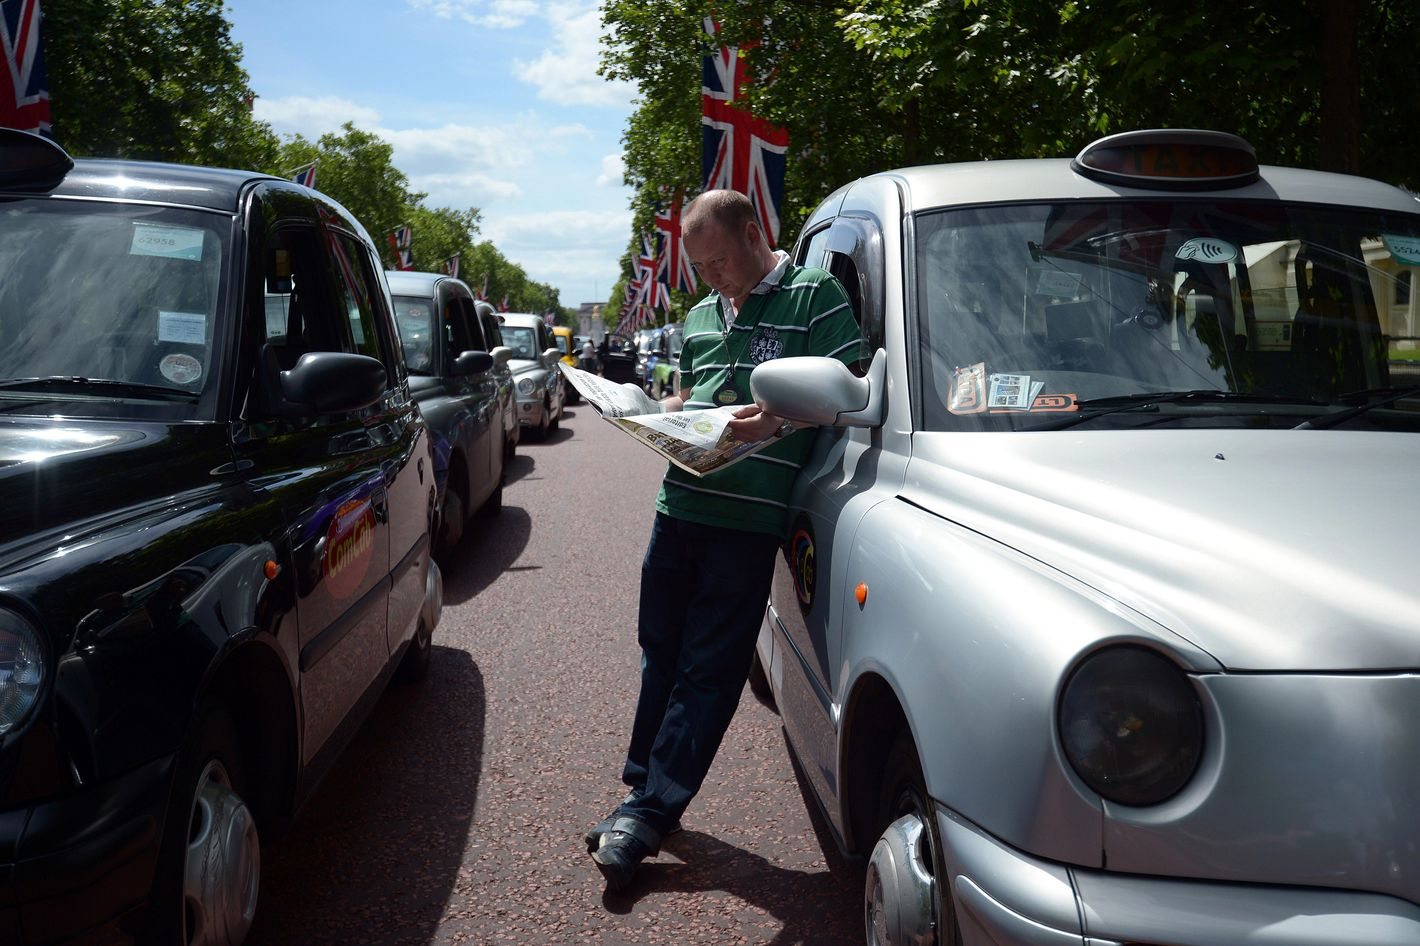 A London black cab driver reads a newspaper during a protest against a new private taxi service 'Uber', a mobile phone app, on the Mall leading to Buckingham Palace in central London on June 11, 2014. Taxi drivers brought parts of London, Paris and other European cities to a standstill on June 11 as they protested against new private cab apps such as Uber which have shaken up the industry. Thousands of London's iconic black cabs, many of them beeping their horns, filled the roads around Buckingham Palace, Trafalgar Square and the Houses of Parliament to the exclusion of any other vehicles. AFP PHOTO / CARL COURT